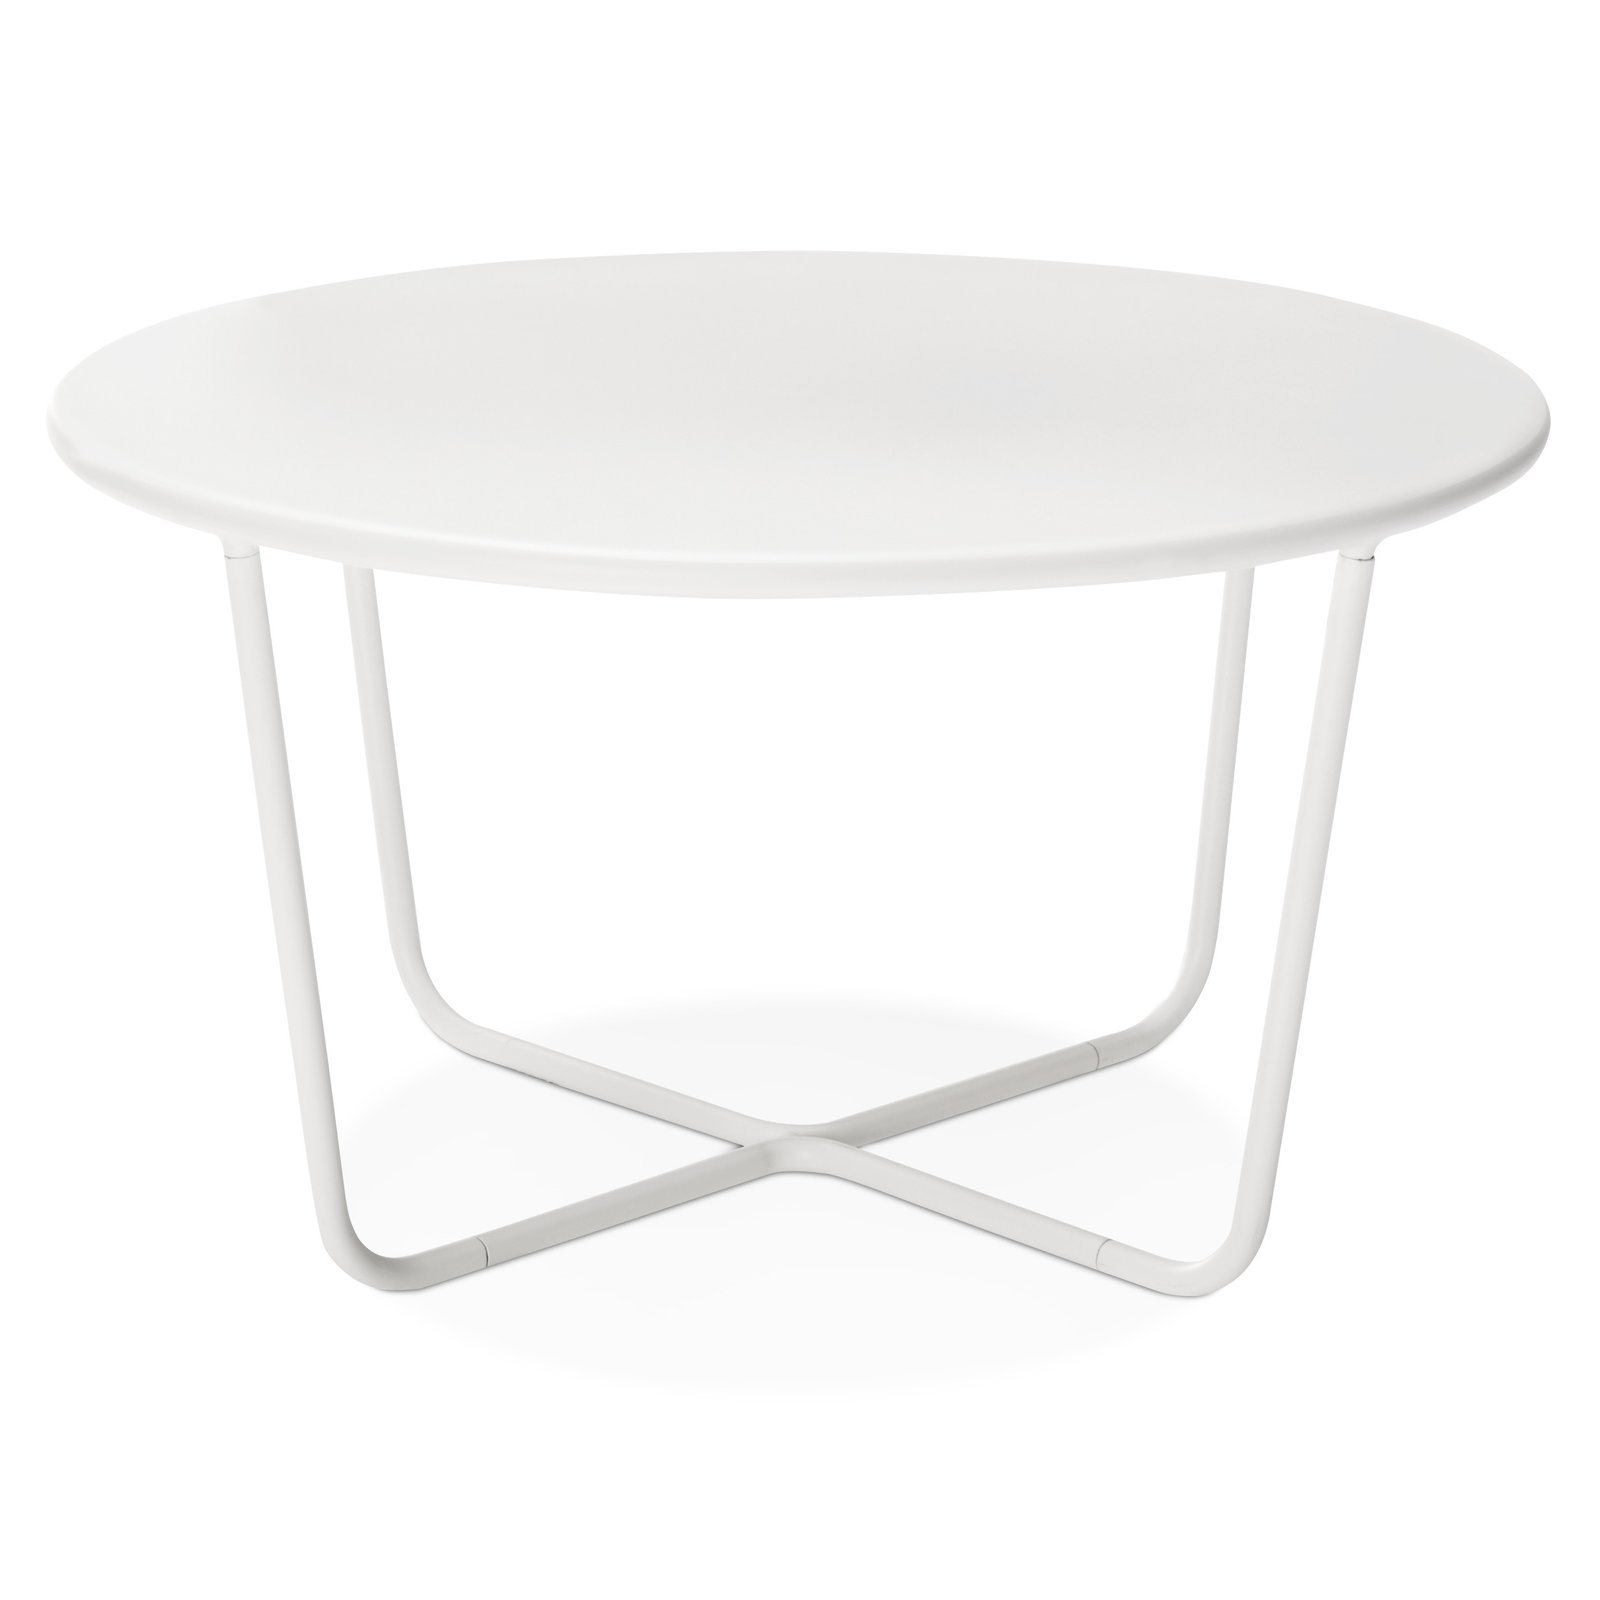 Outdoor Side Table, $89.99, available in gray or white; designed by Chris Deam and Nick Dine for Modern by Dwell Magazine for Target   Photo 10 of 17 in Modern by Dwell Magazine: Outdoor Collection